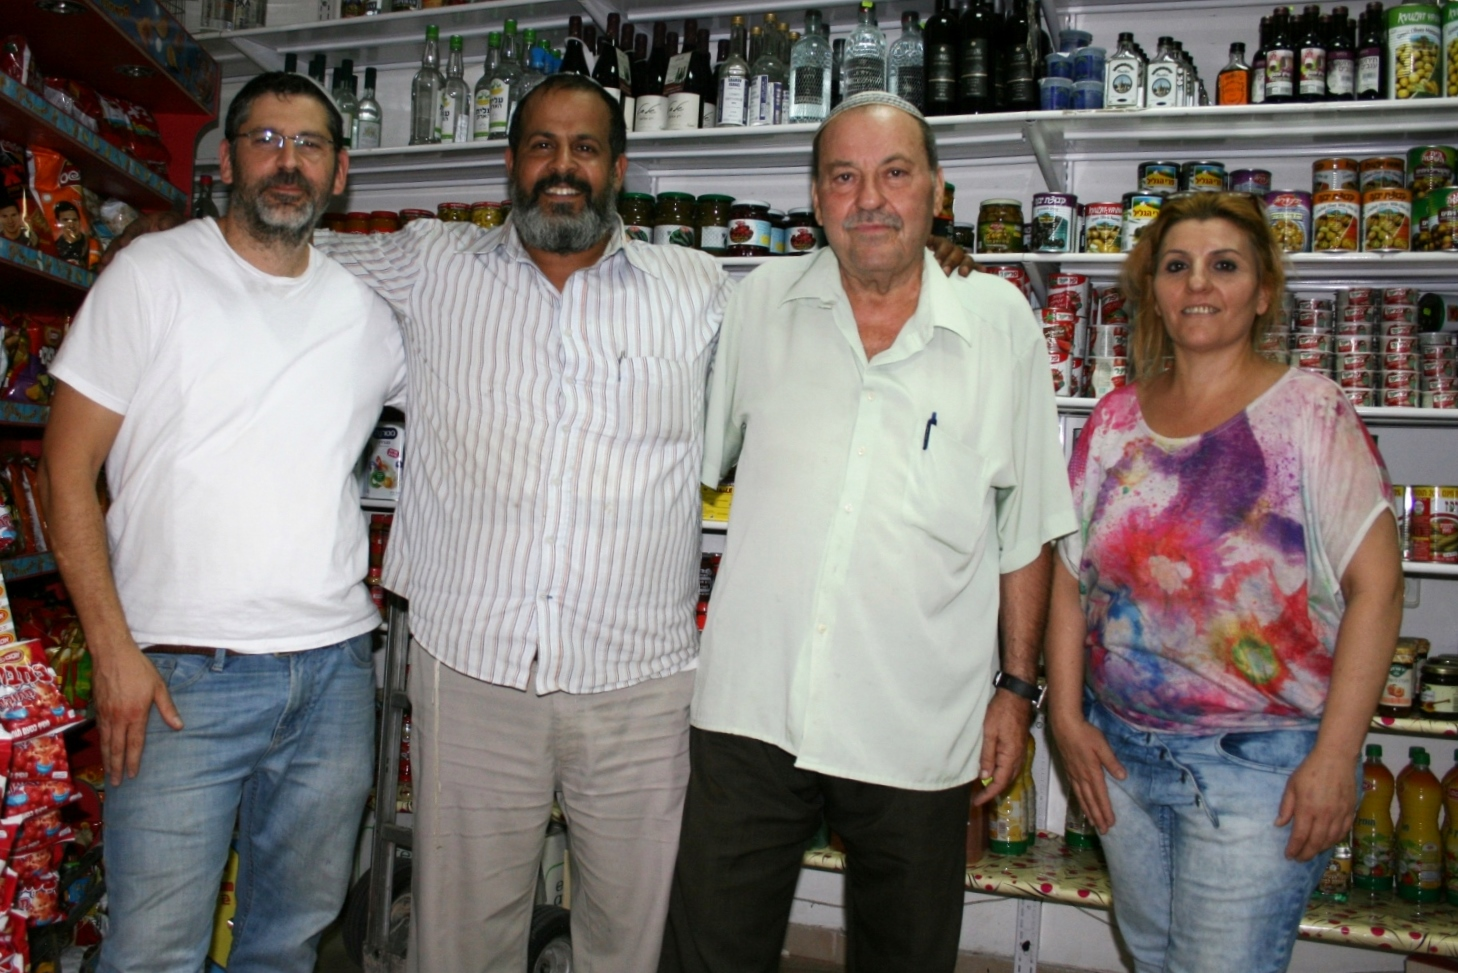 Solomon Cohen, second from right, and his daughter, Penina, at Cohen's store in Sderot with Avichai Amusi, left, of Mercaz Hachesed and Yedidya Rosenberg of Leket Israel, Aug. 3, 2014. (Guy Yehoshua)